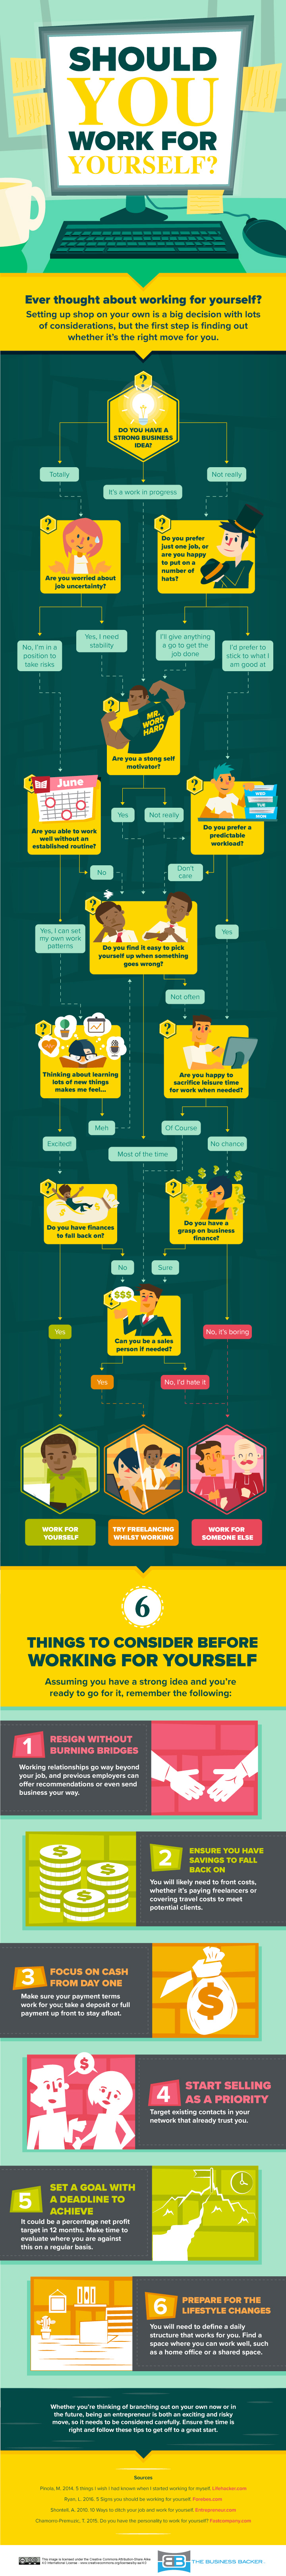 Should You Work For Yourself? [Infographic]